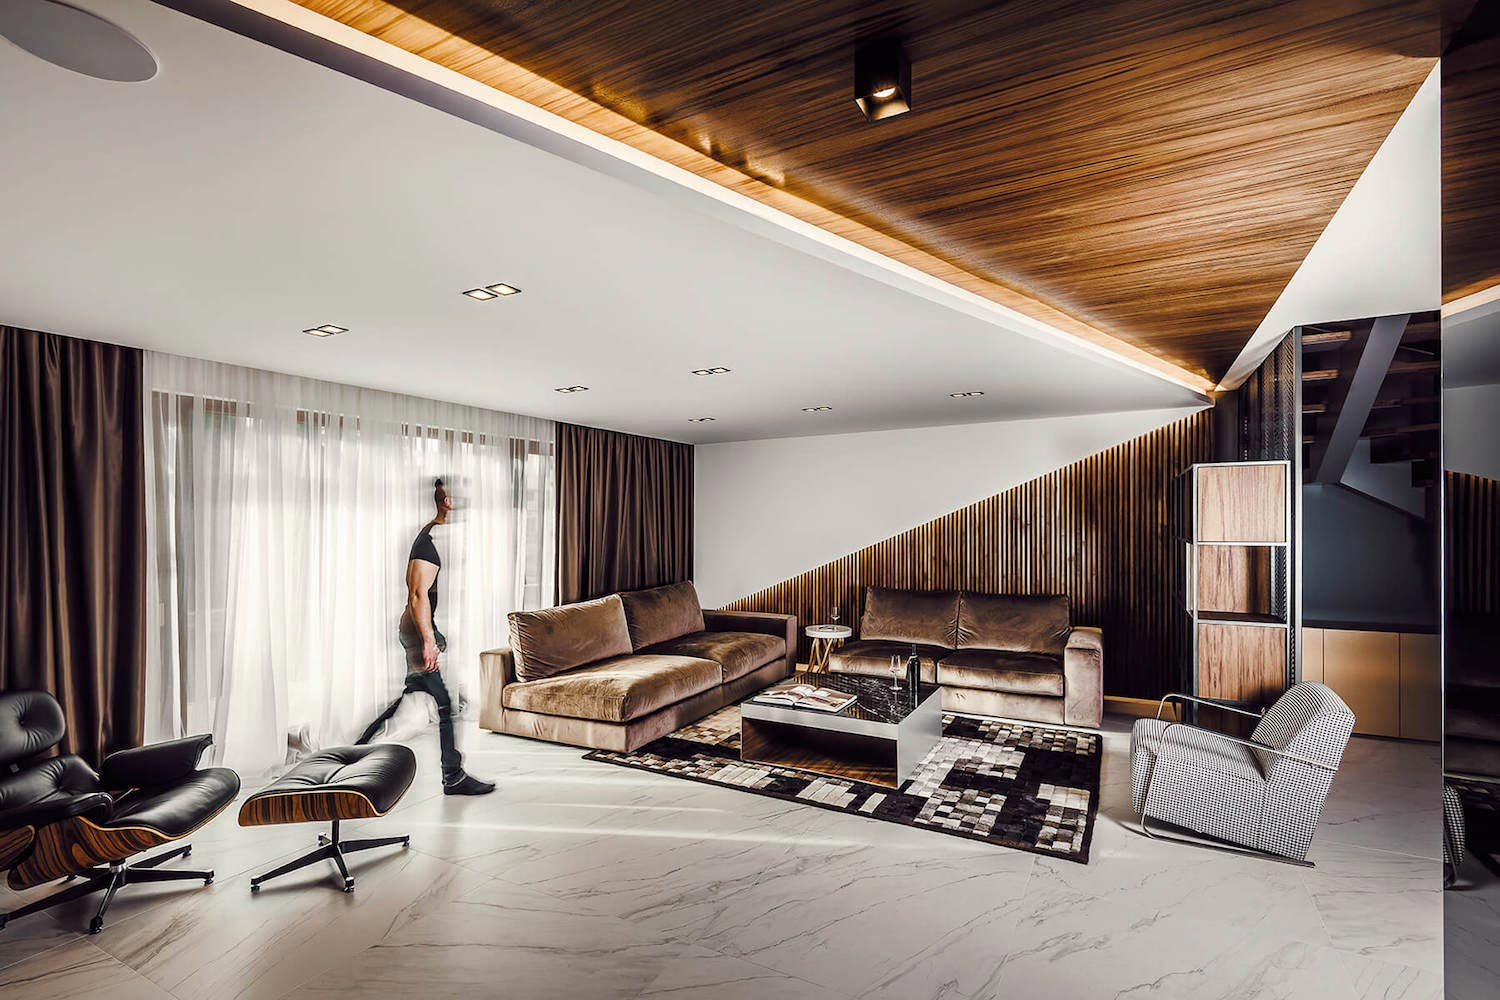 Apartment Interior Design  Made Share Sophisticated Luxury Feeling Owners Caandesign 01